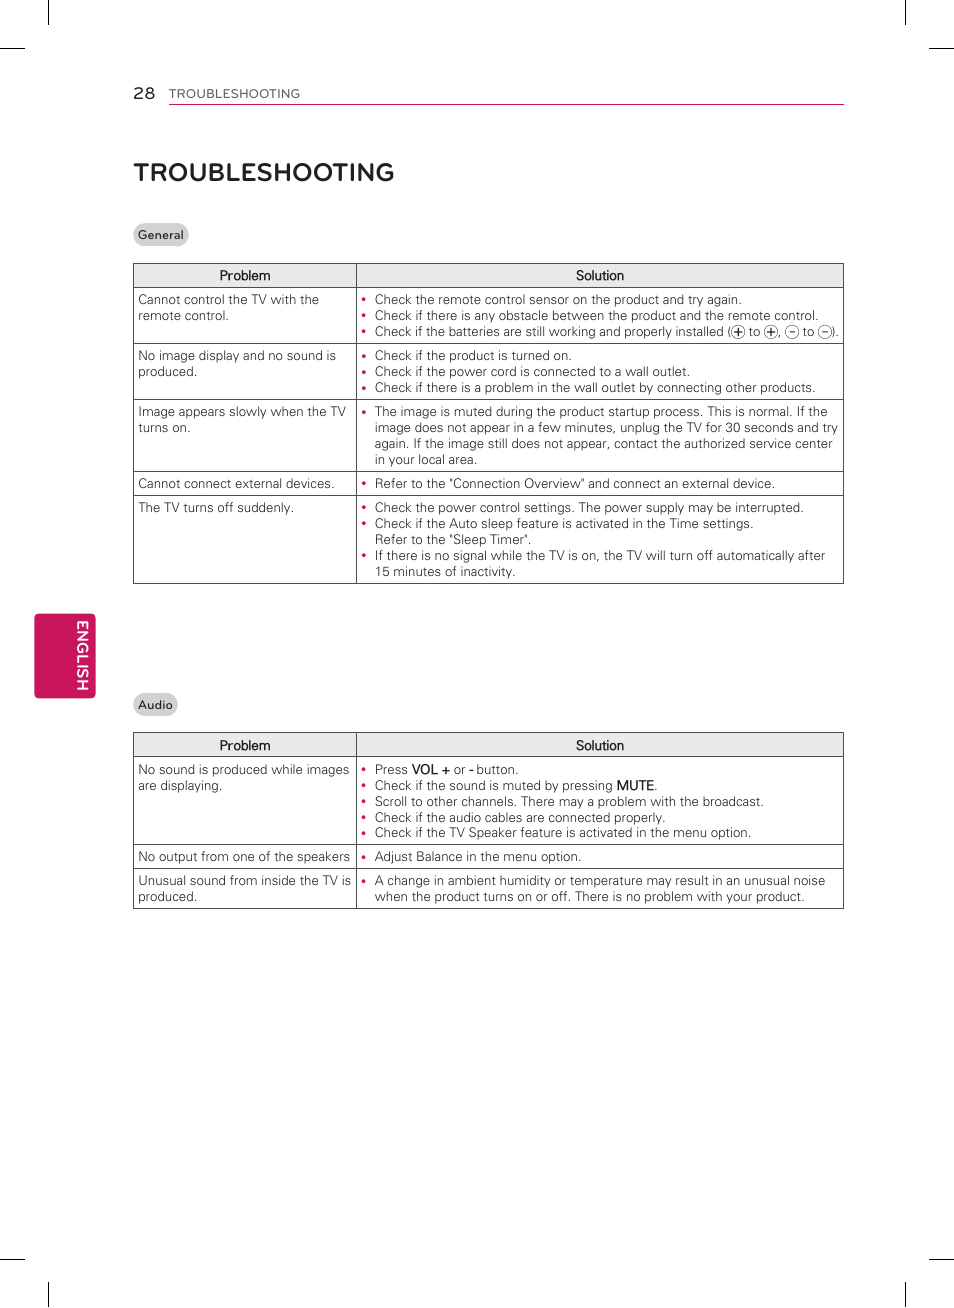 Troubleshooting | LG 60PN5300 User Manual | Page 28 / 44